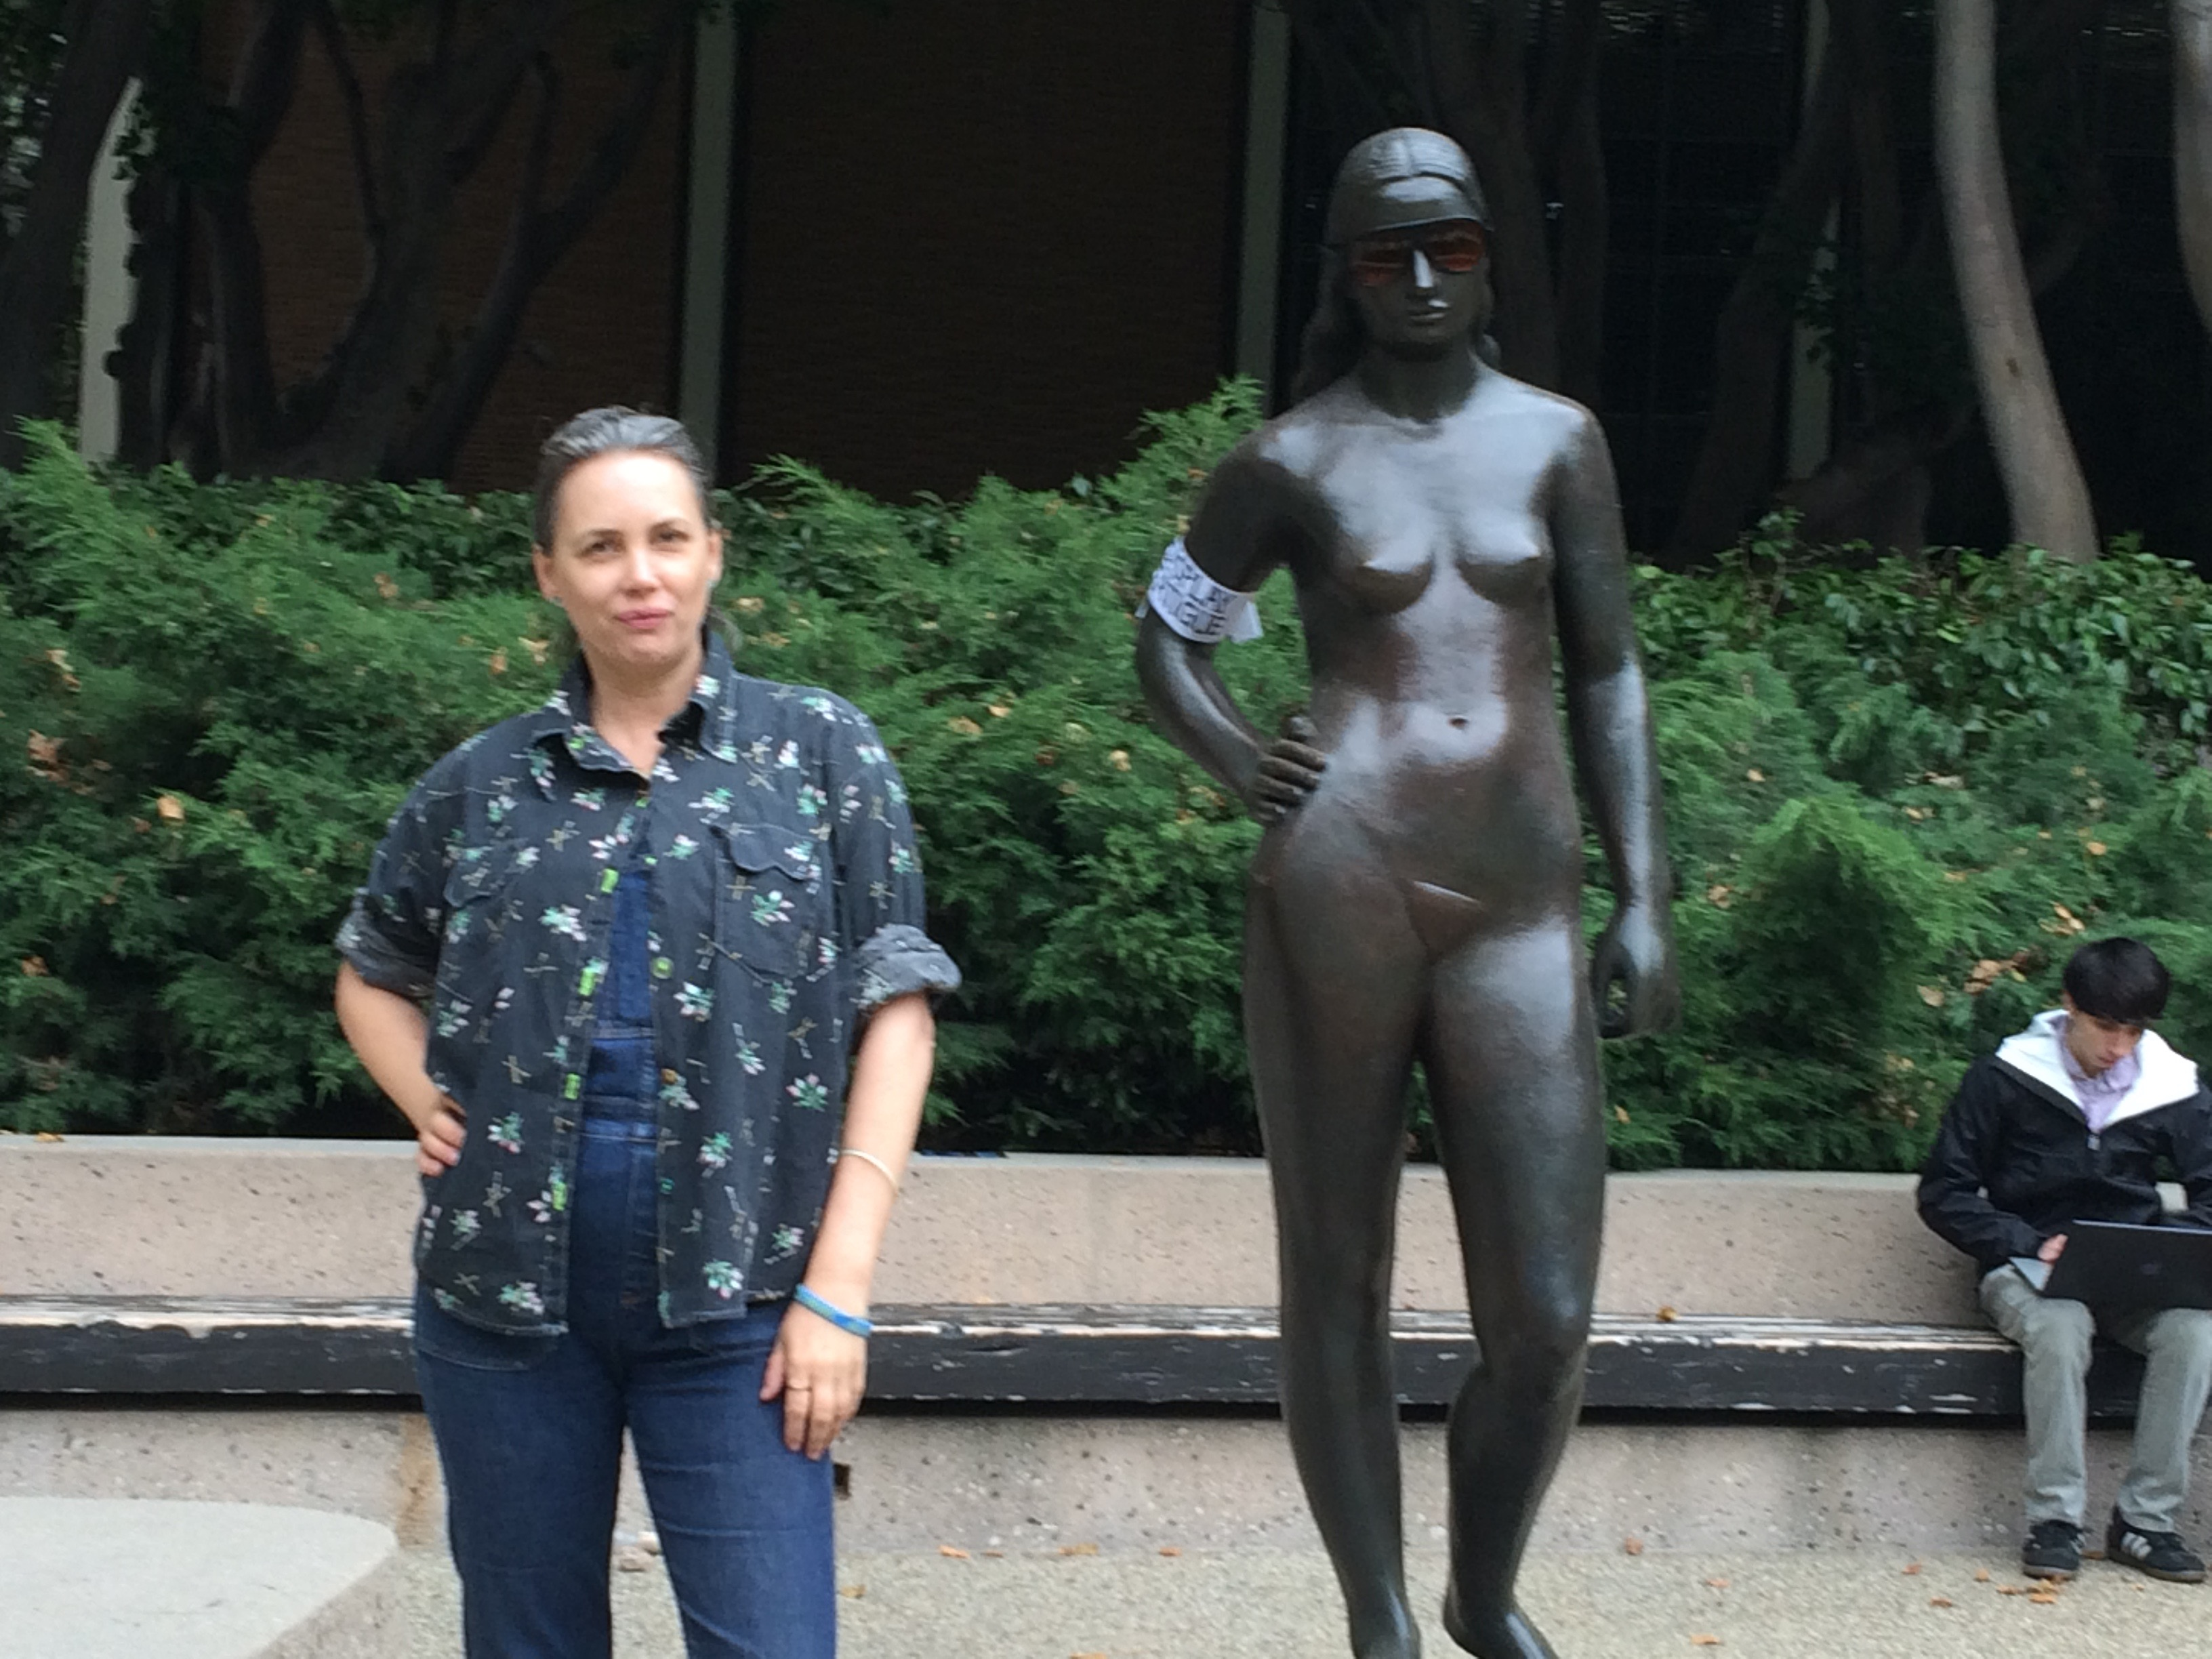 Photo of Display Fatigue: A Feminist Read on UCLA's Sculpture Garden